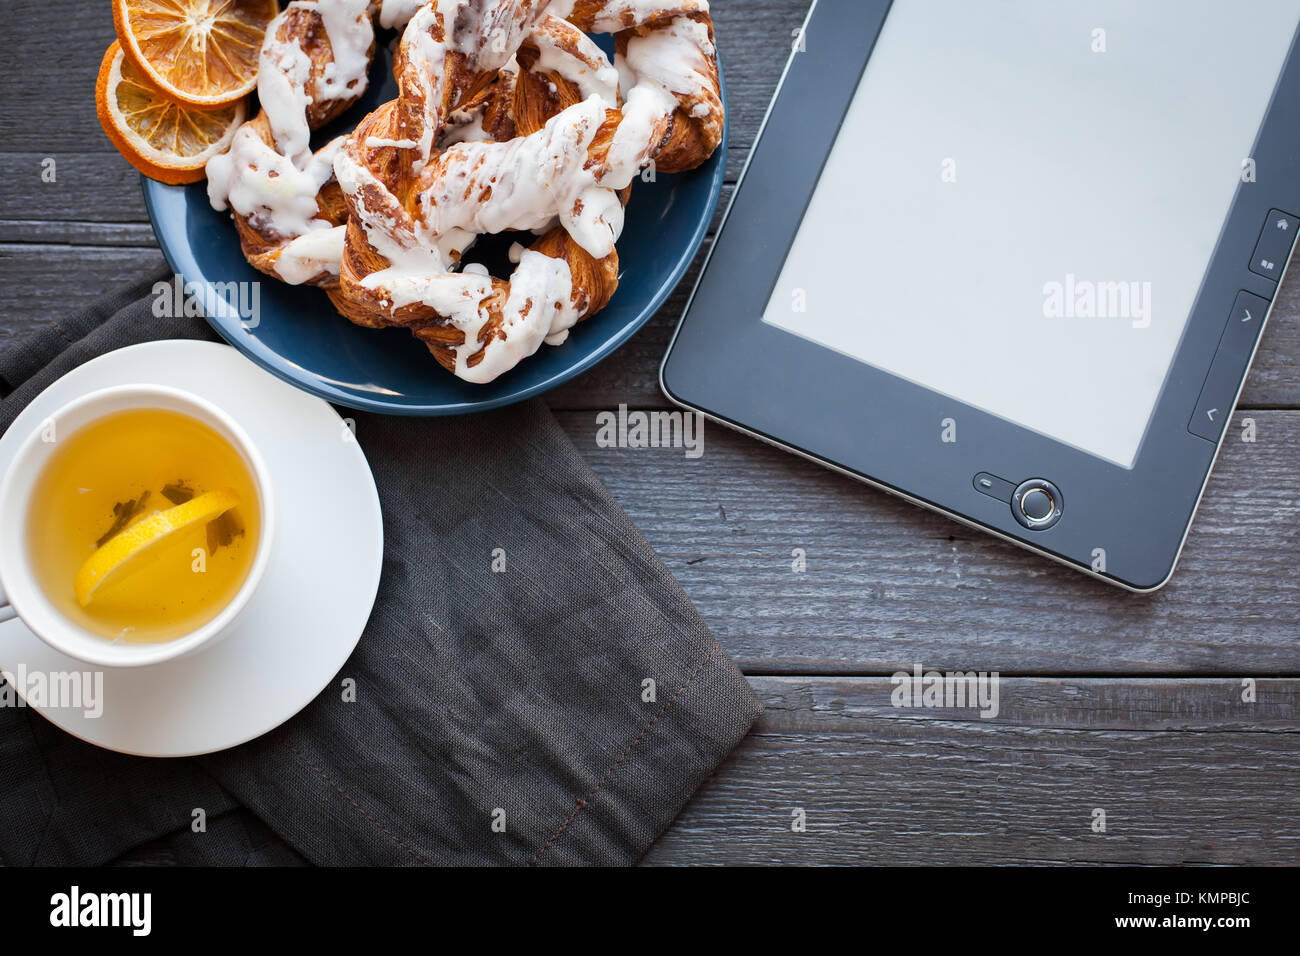 E-book and Bavarian cream puff with crushed hazelnut and lemon fudge on a blue plate. In the background a cup of Stock Photo